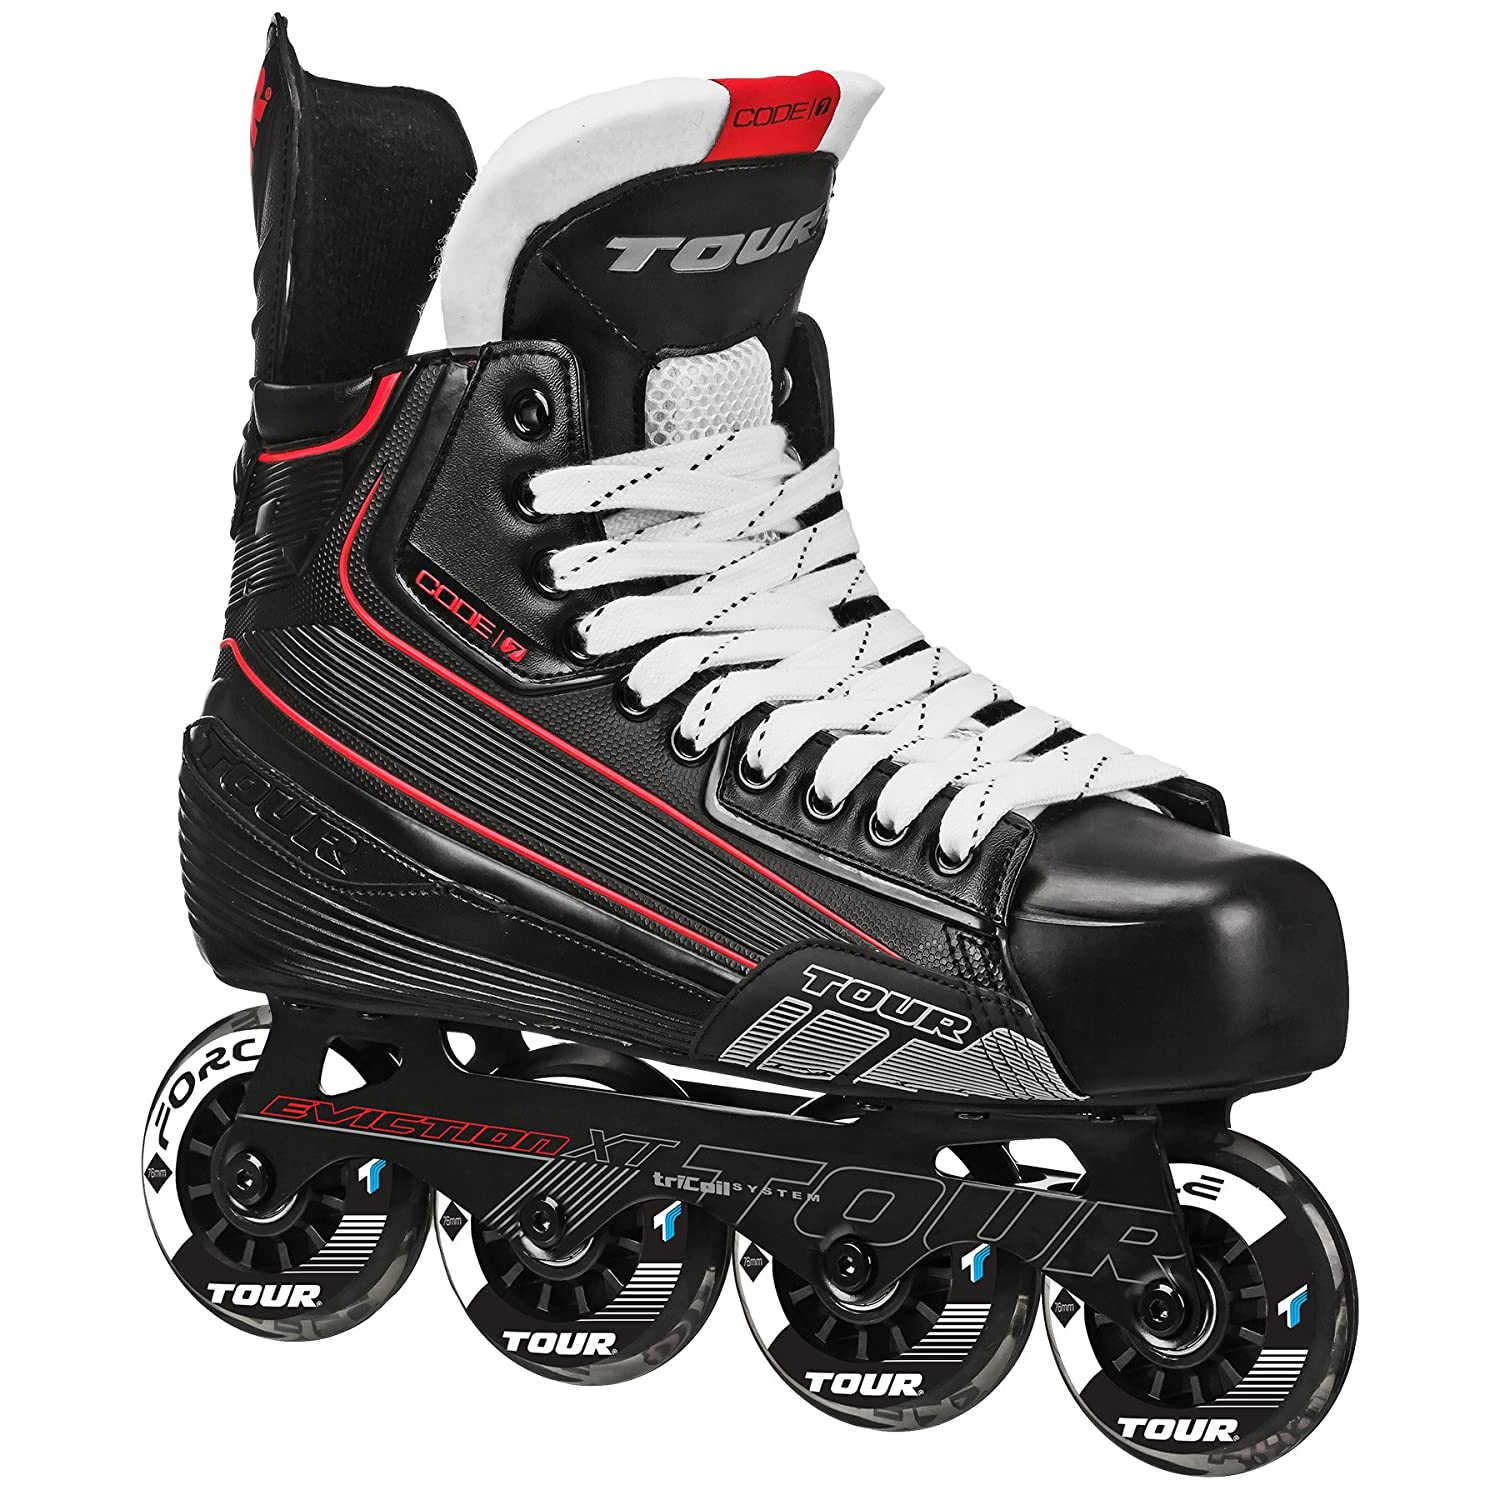 Tour Hockey Code 7 Senior Inline Hockey Skate